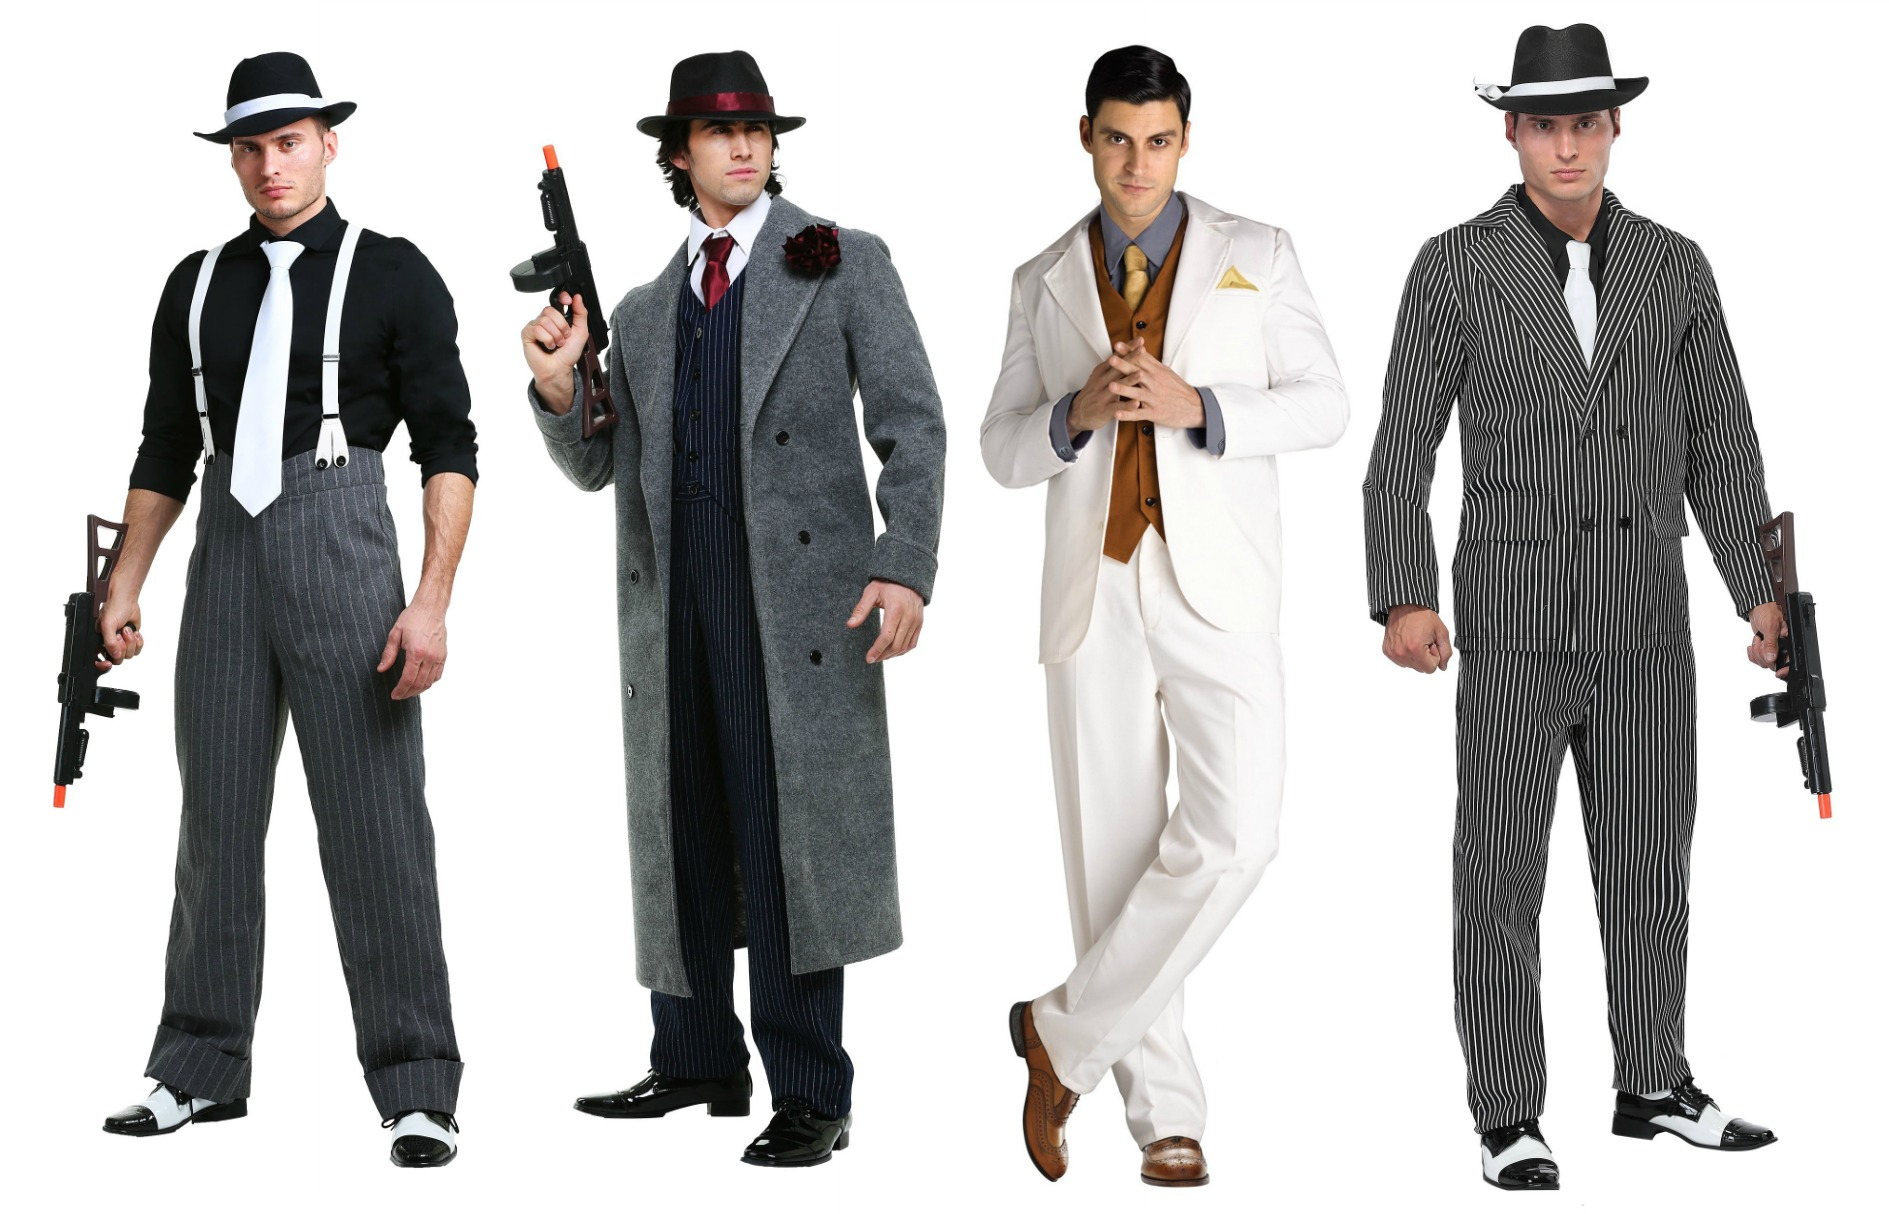 Silent-ology's Handy Tips For (Accurate) Roaring Twenties Halloween Costumes | Silent-ology